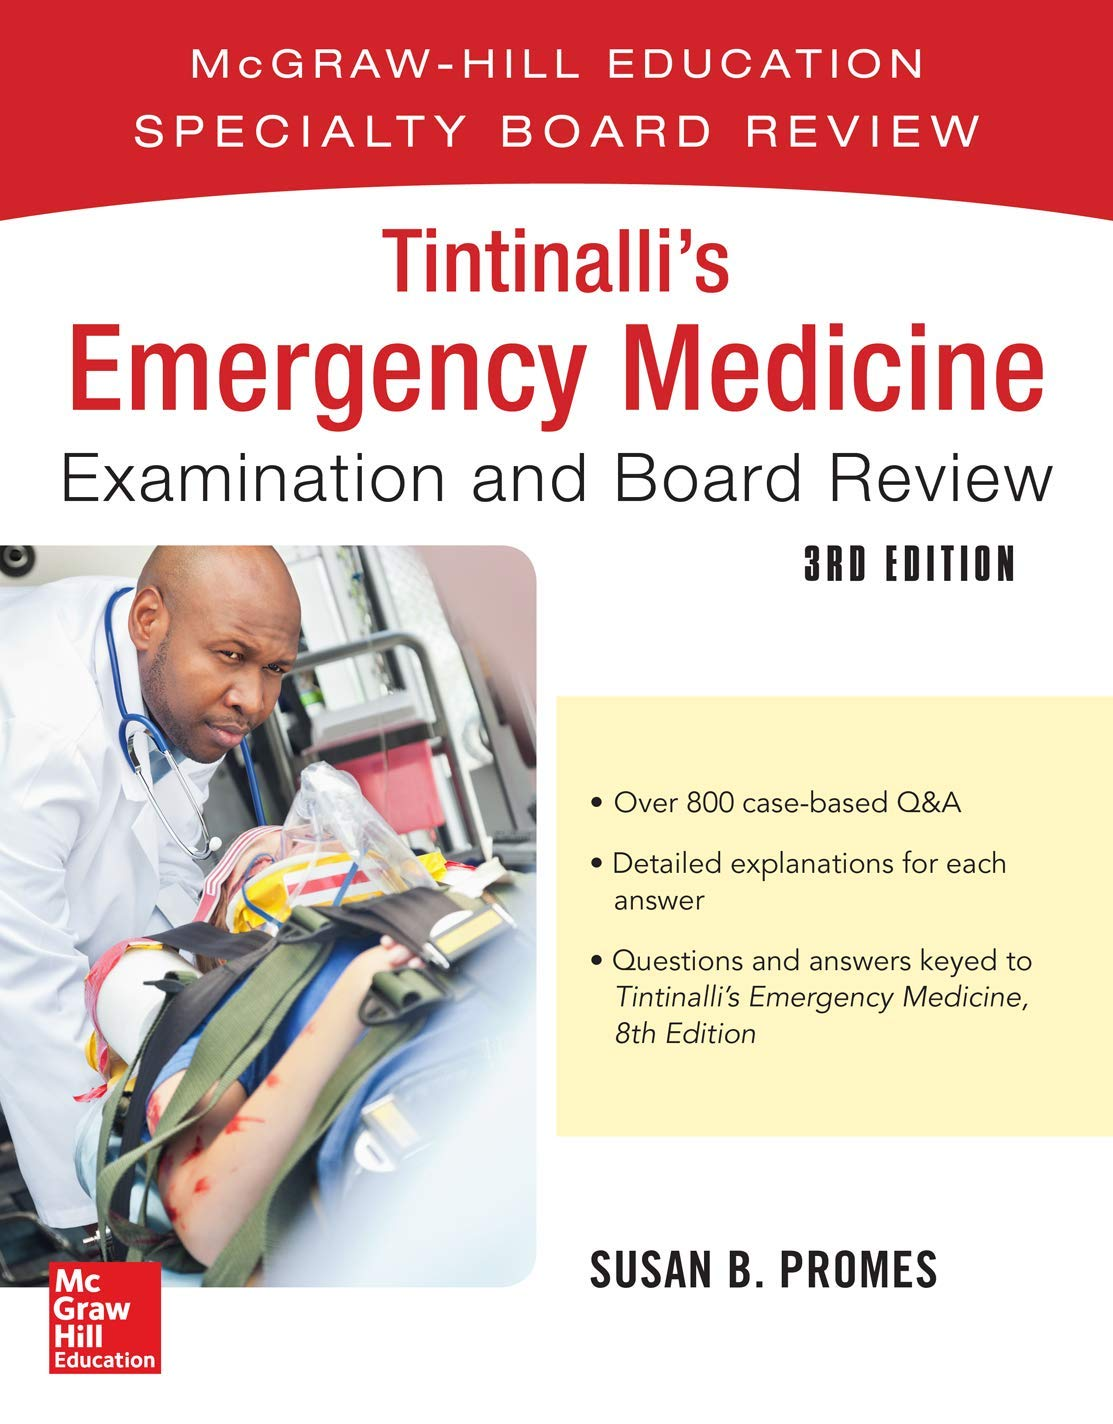 Tintinalli's Emergency Medicine Examination And Board Review